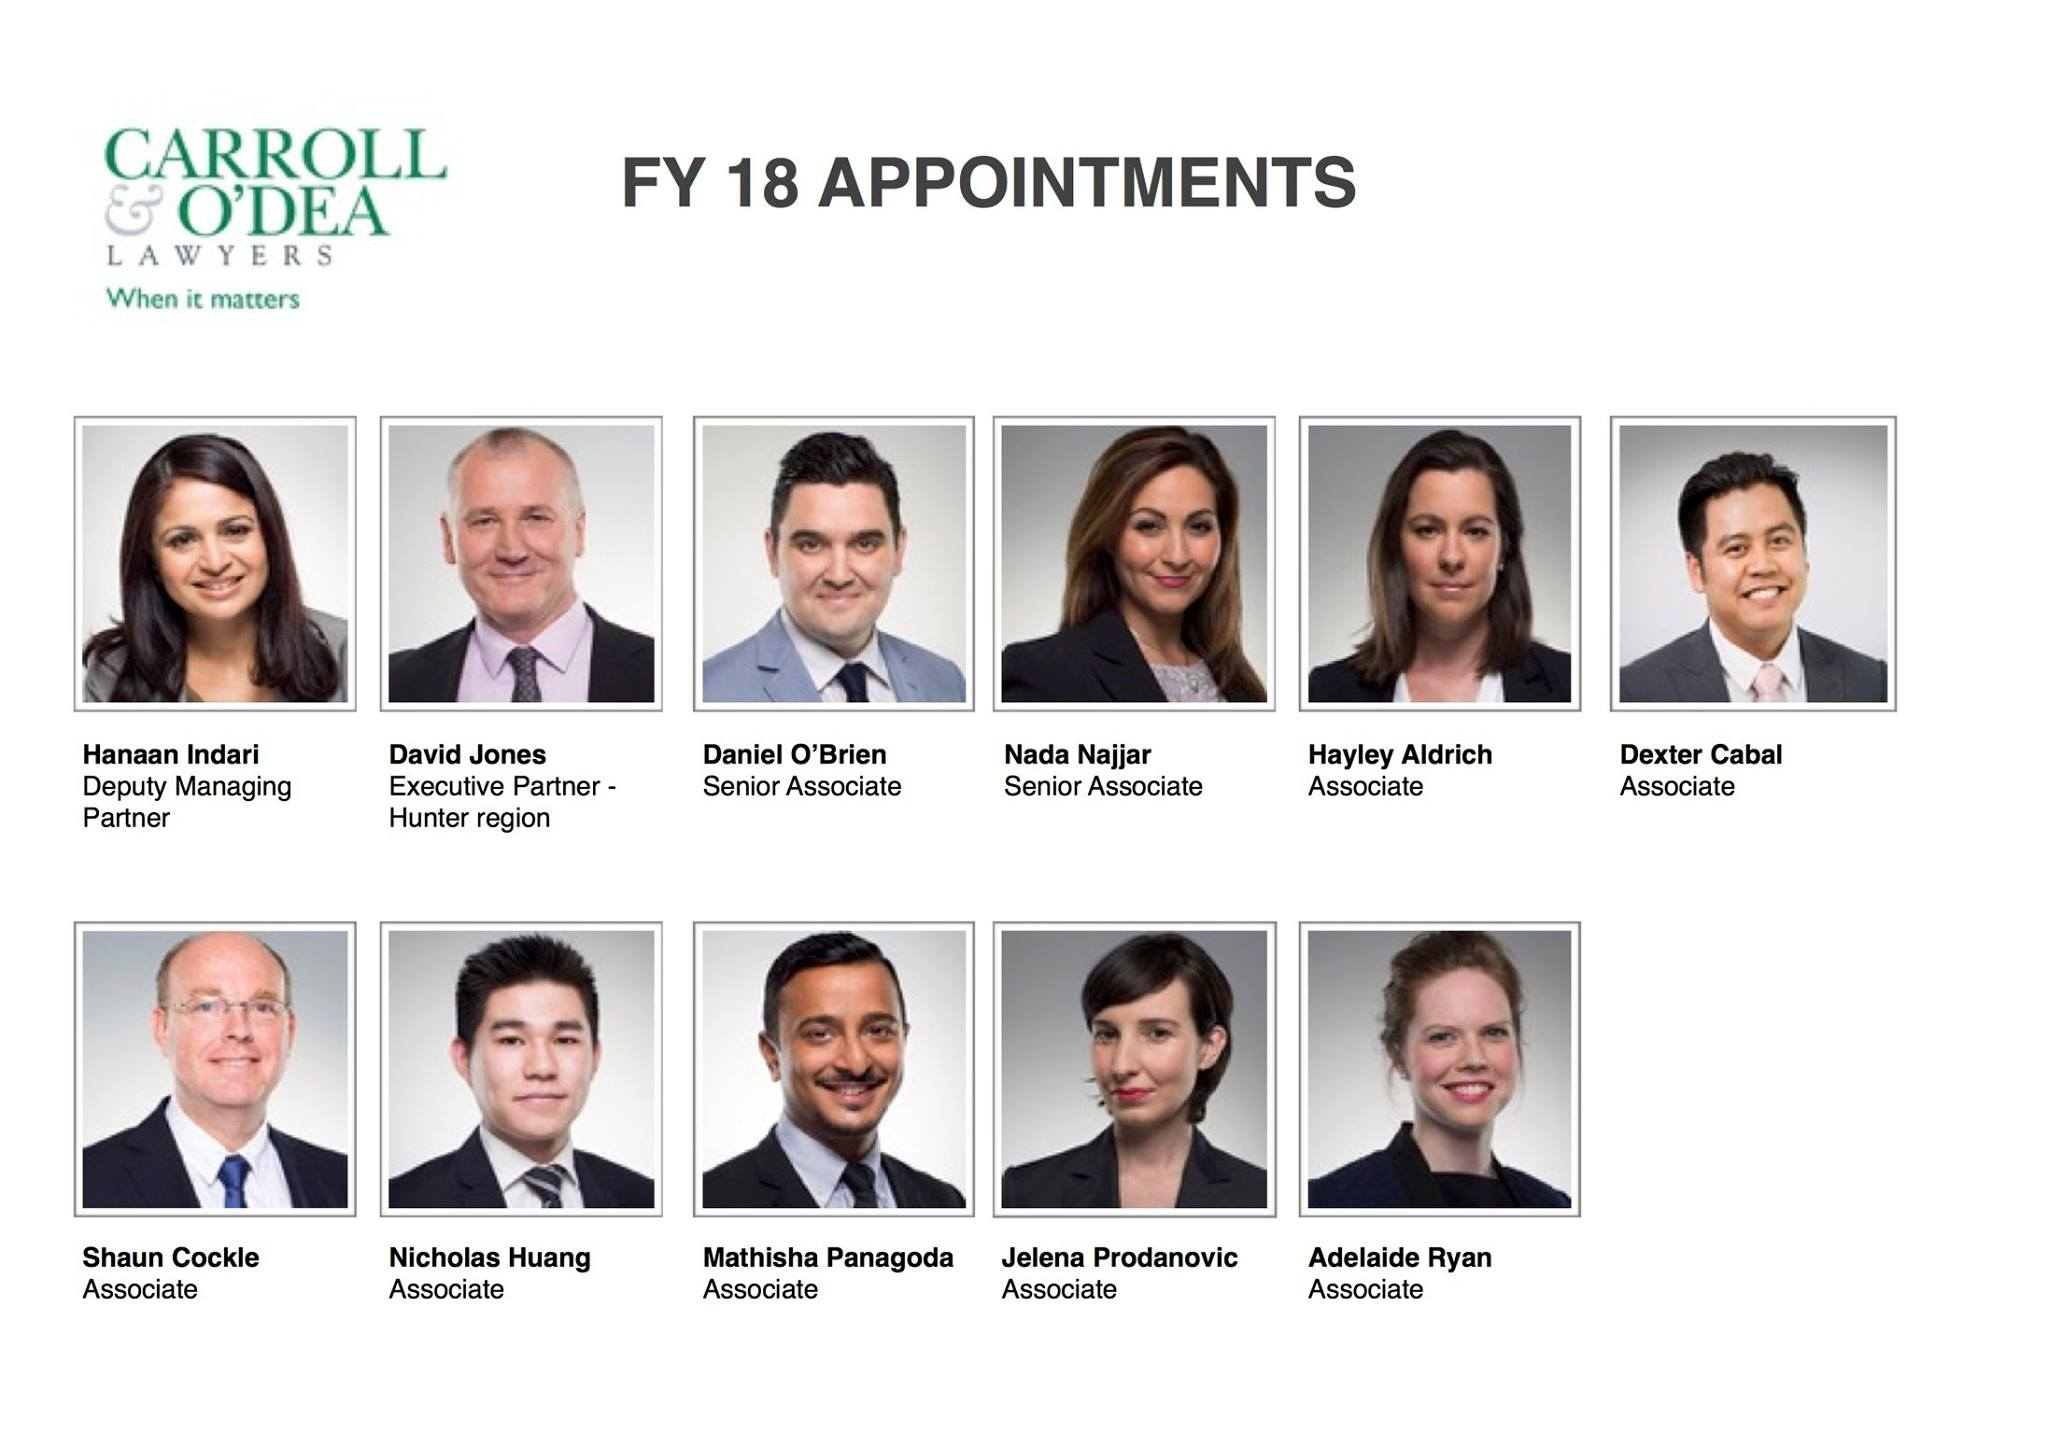 Carroll & O'Dea Lawyers announces FY18 appointments, including new Deputy Managing Partner